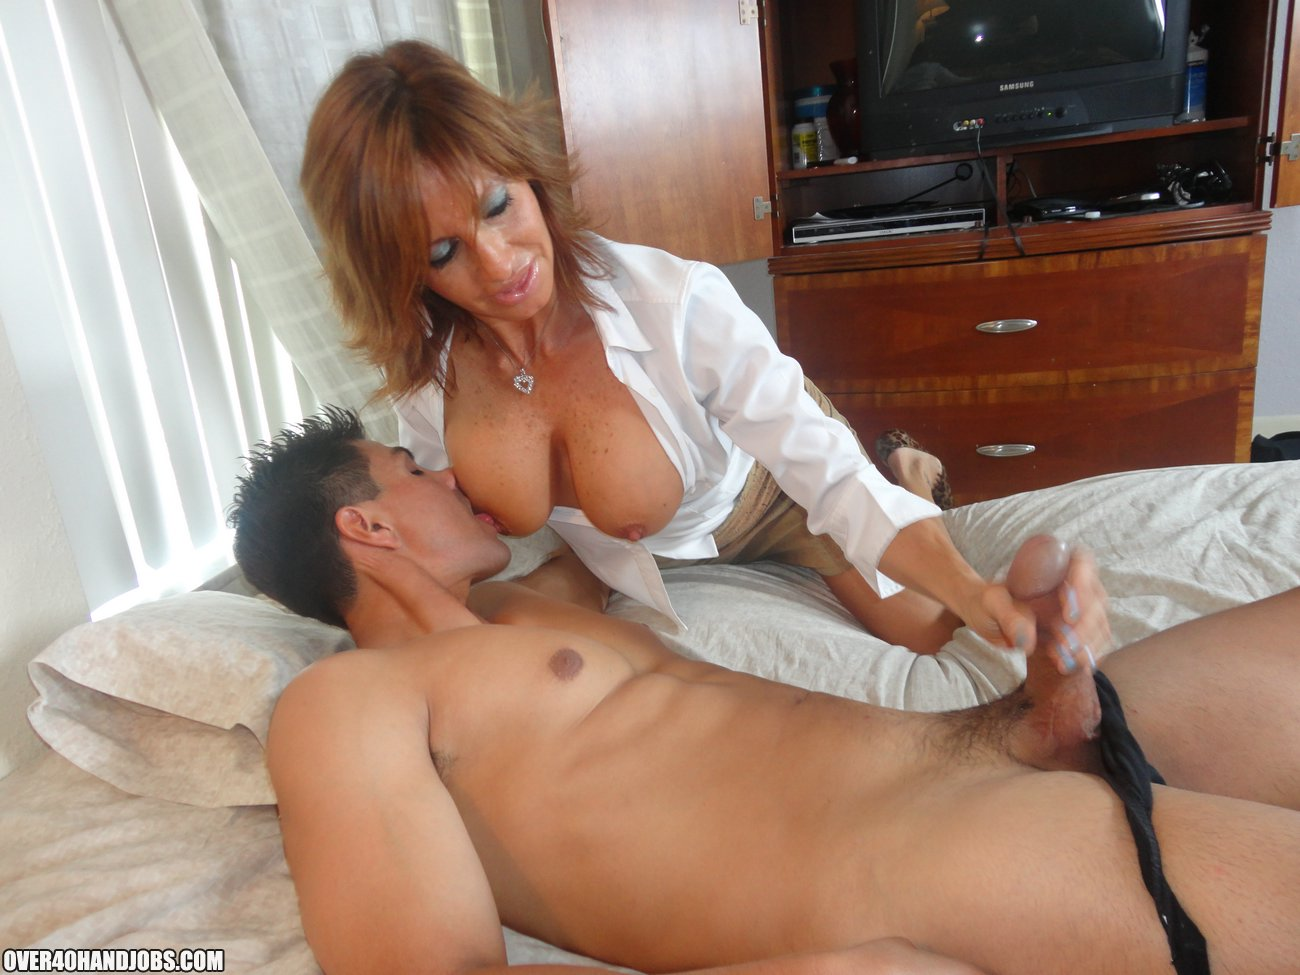 Excited too erotic handjob pity